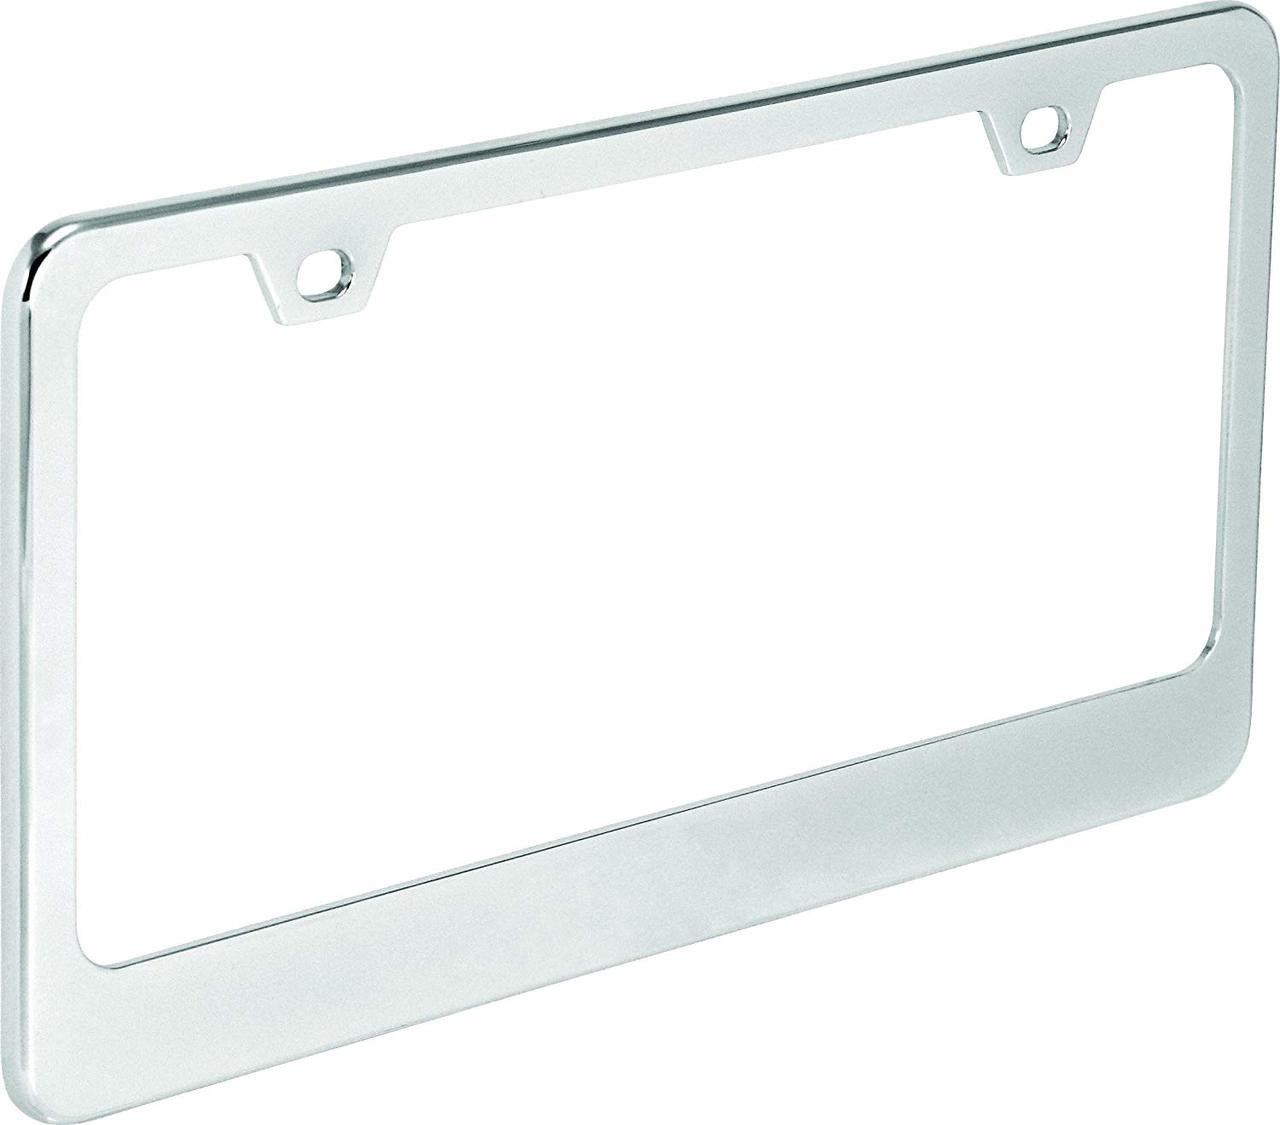 Bell Automotive 22-1-46452-9/Universal Make your Message Personalized License Plate Frame Black